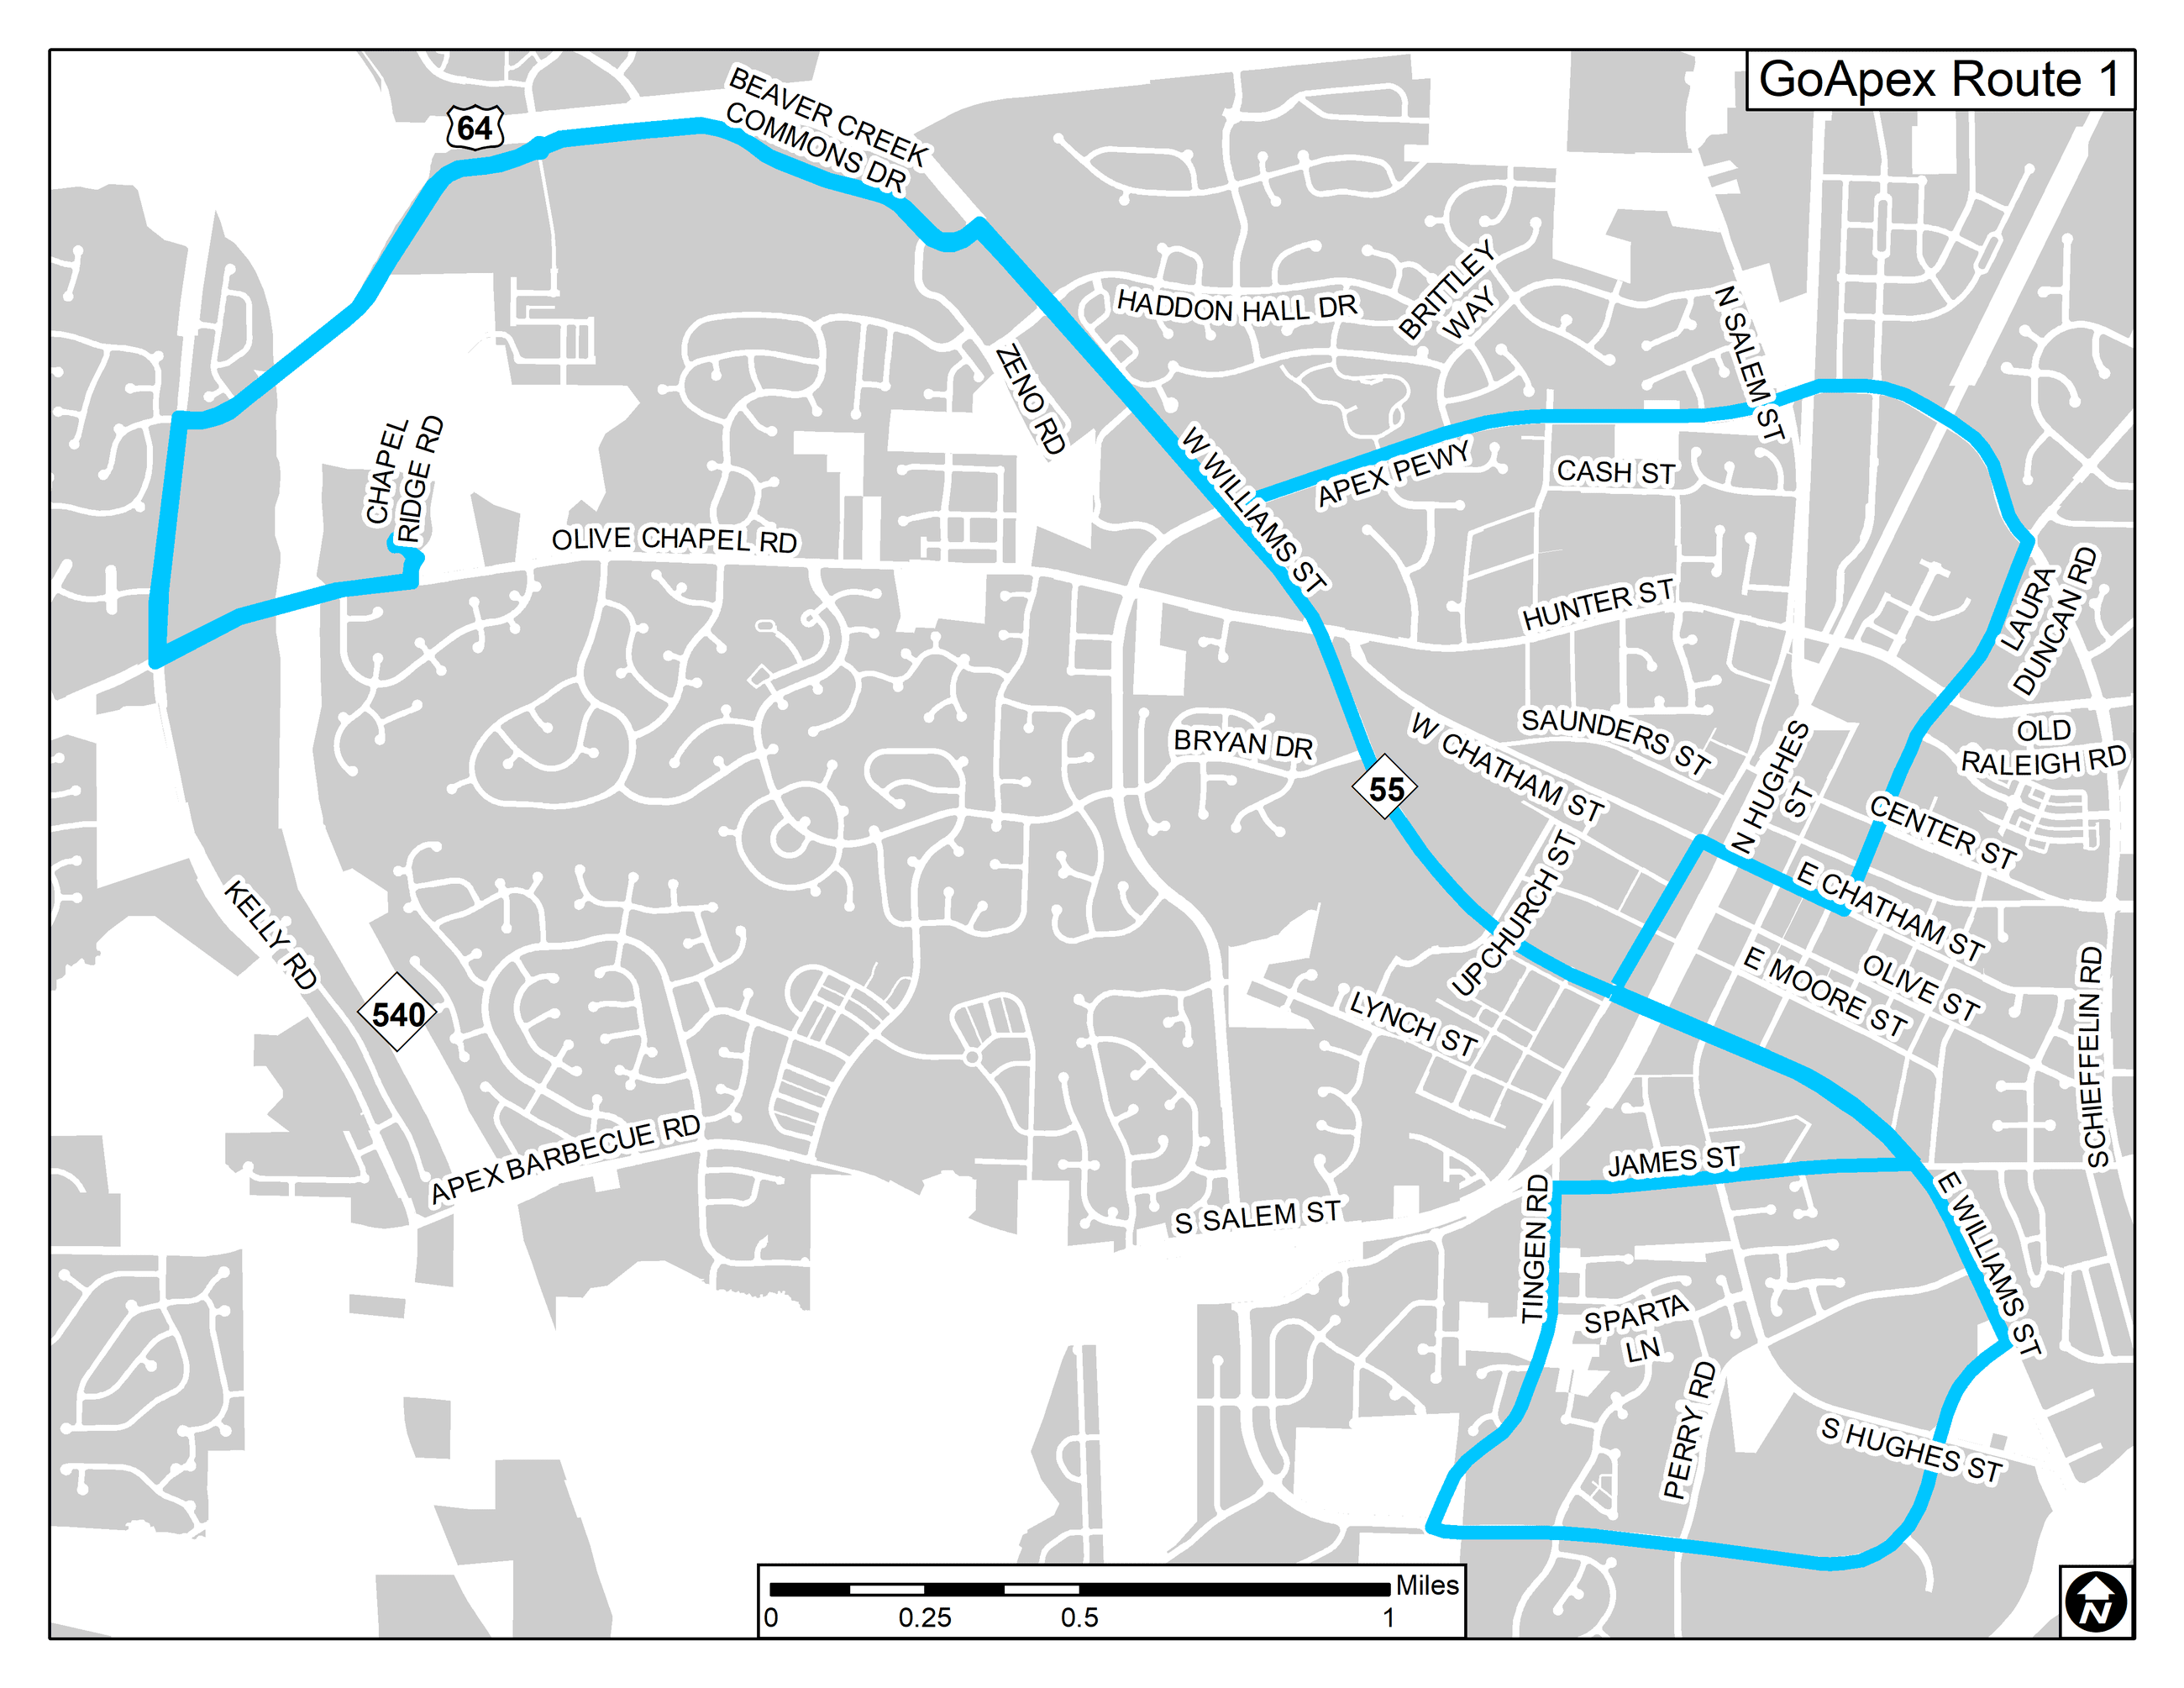 GoApex Route 1 website map